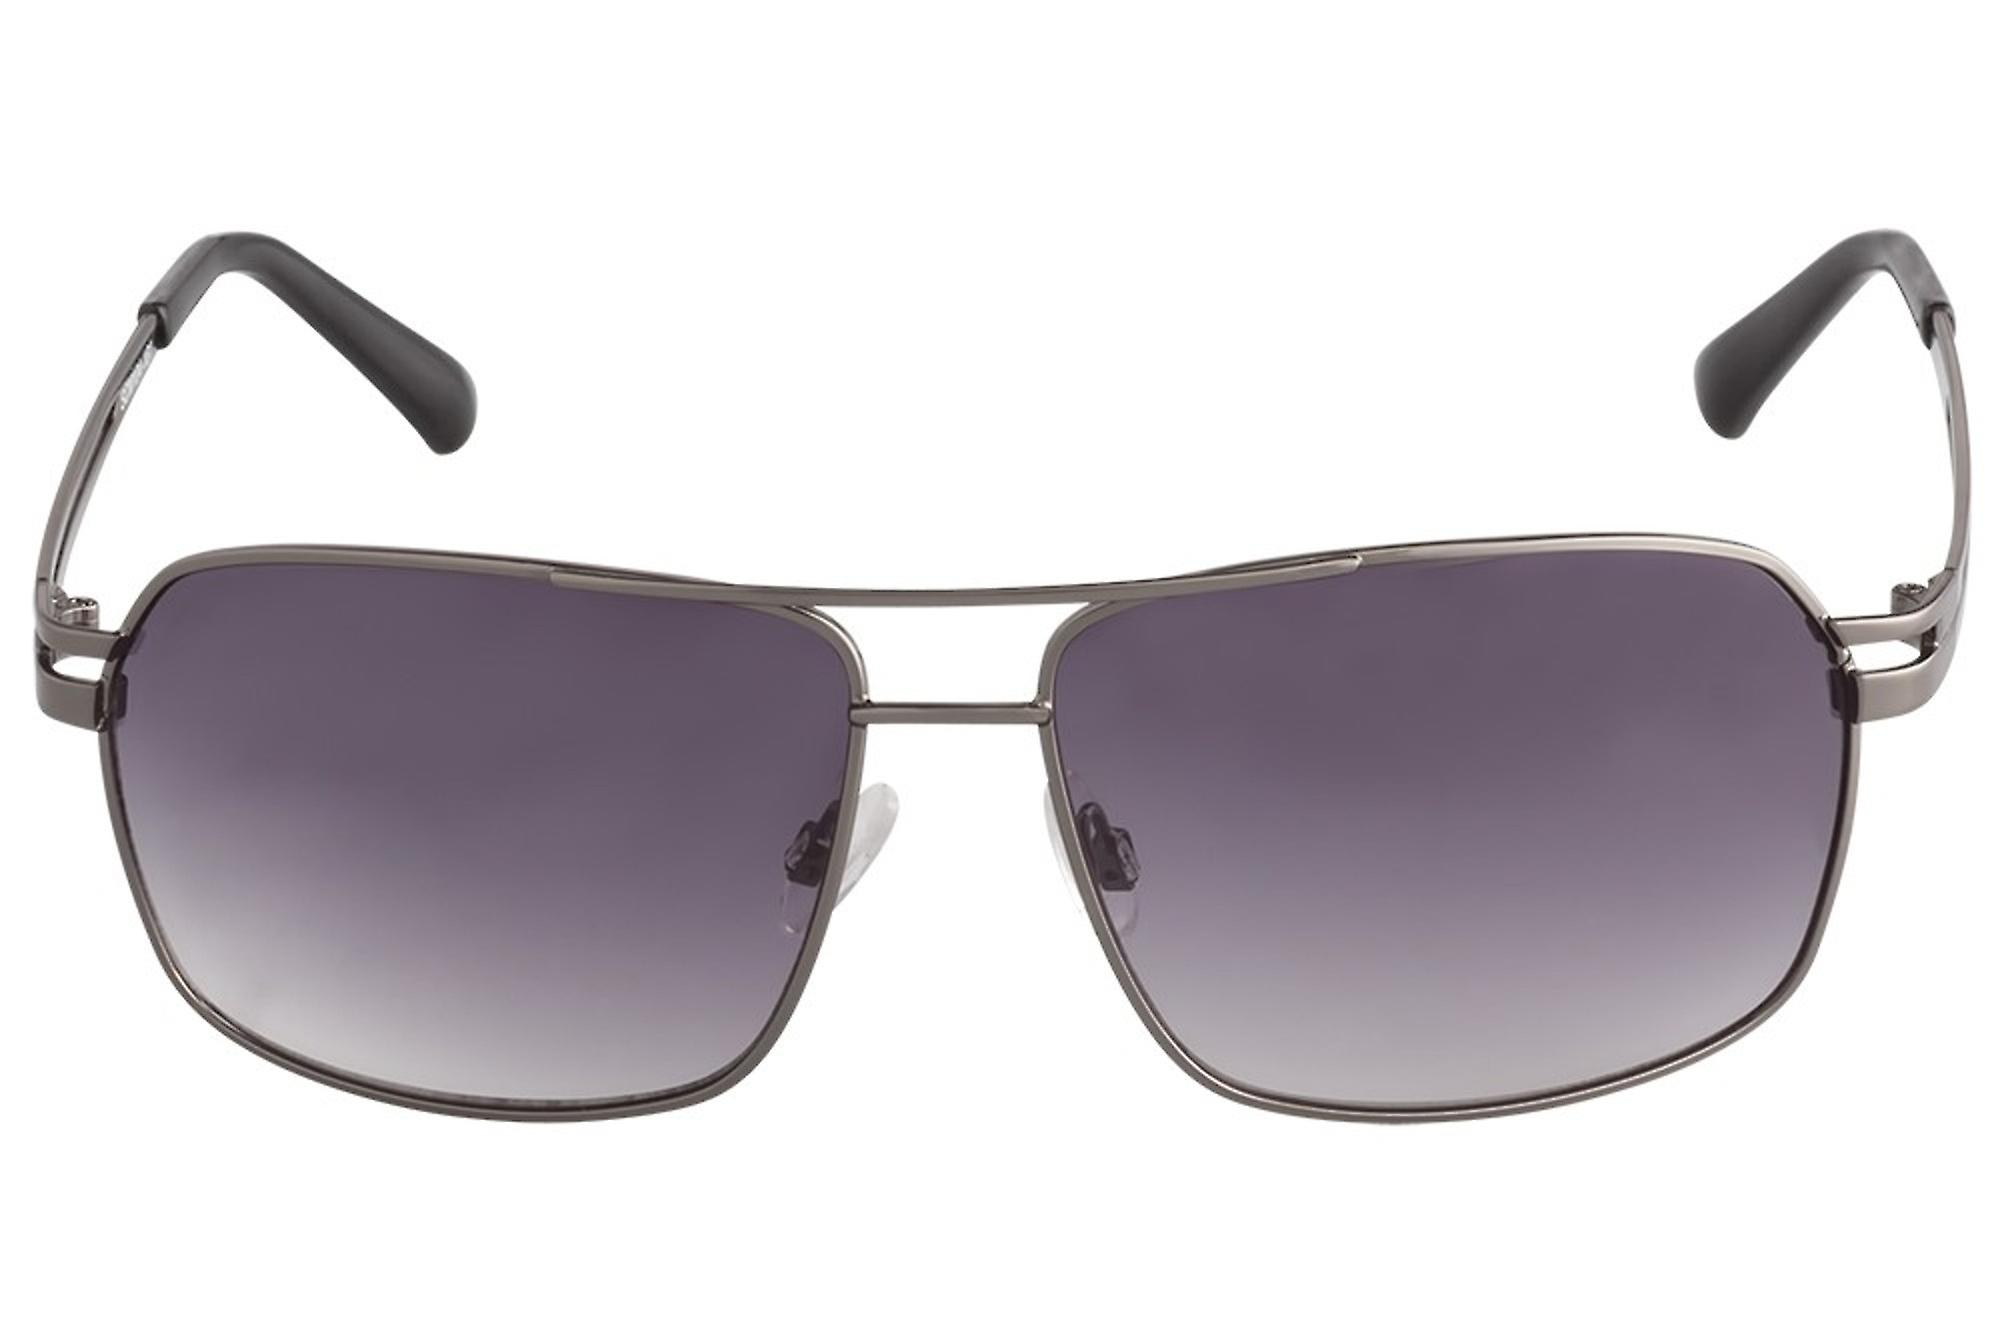 Classic sunglasses for men by Carlo Monti with 100% UV protection   sturdy metal frame, high quality sunglasses case, microfiber glasses pouch and 2 year warranty   SCM104-181 Napoli